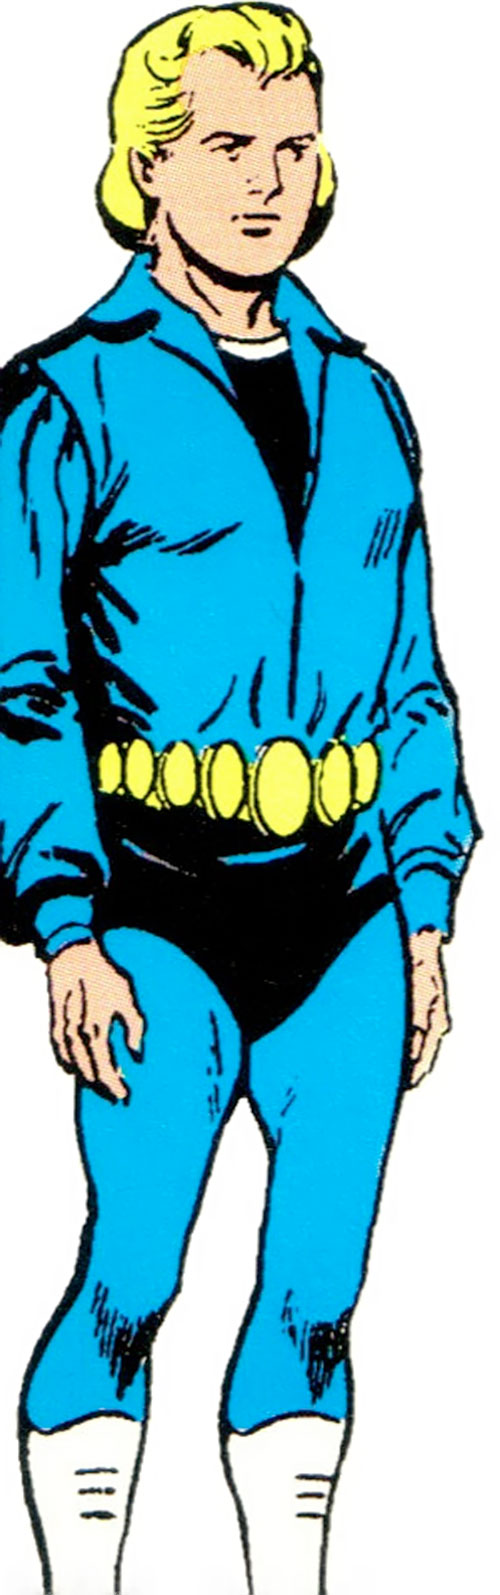 Animal Lad (Legion of Super-Heroes character) (DC Comics)